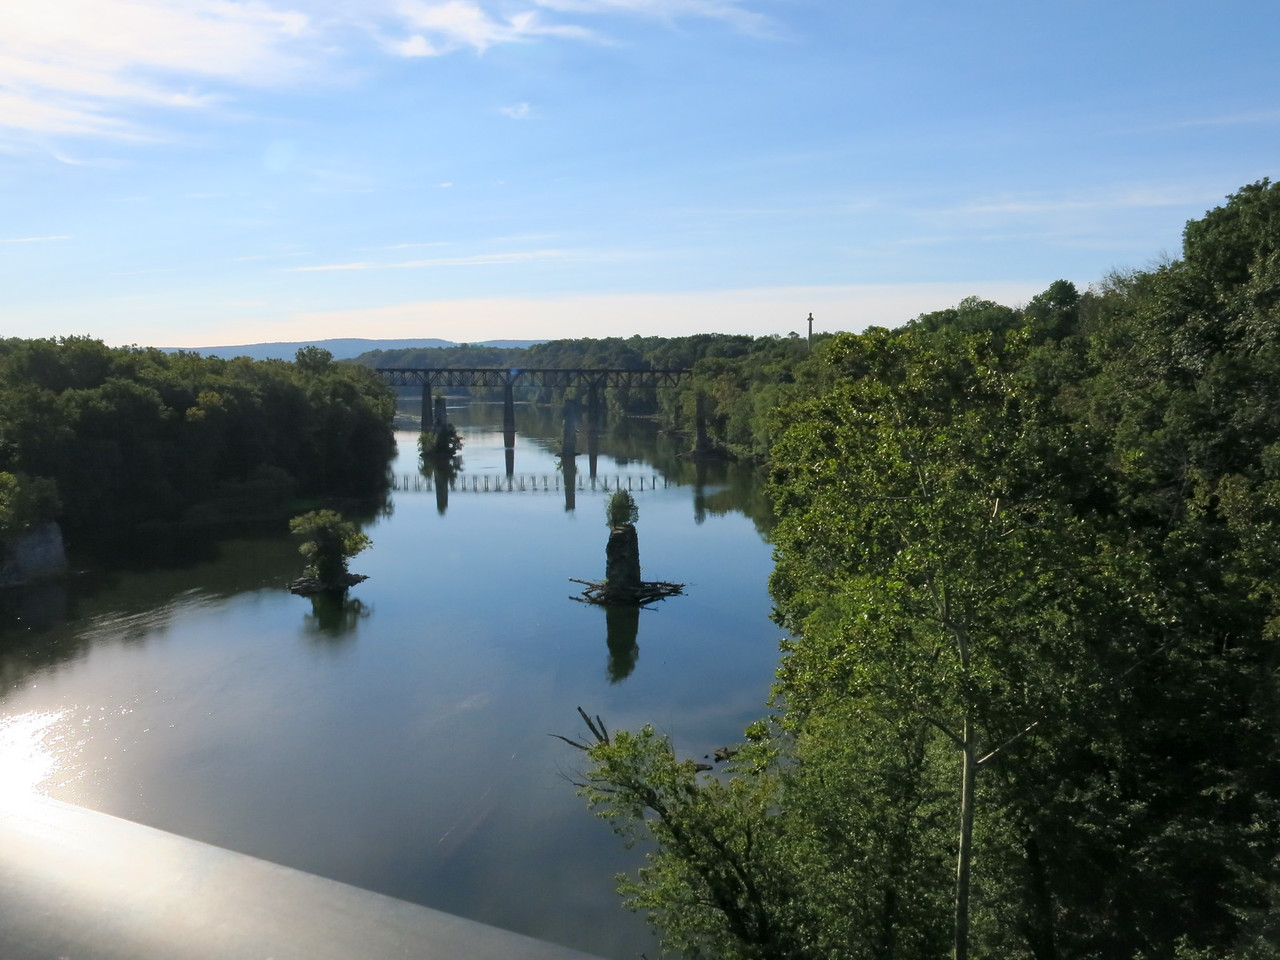 Looking downstream from the Potomac River car bridge